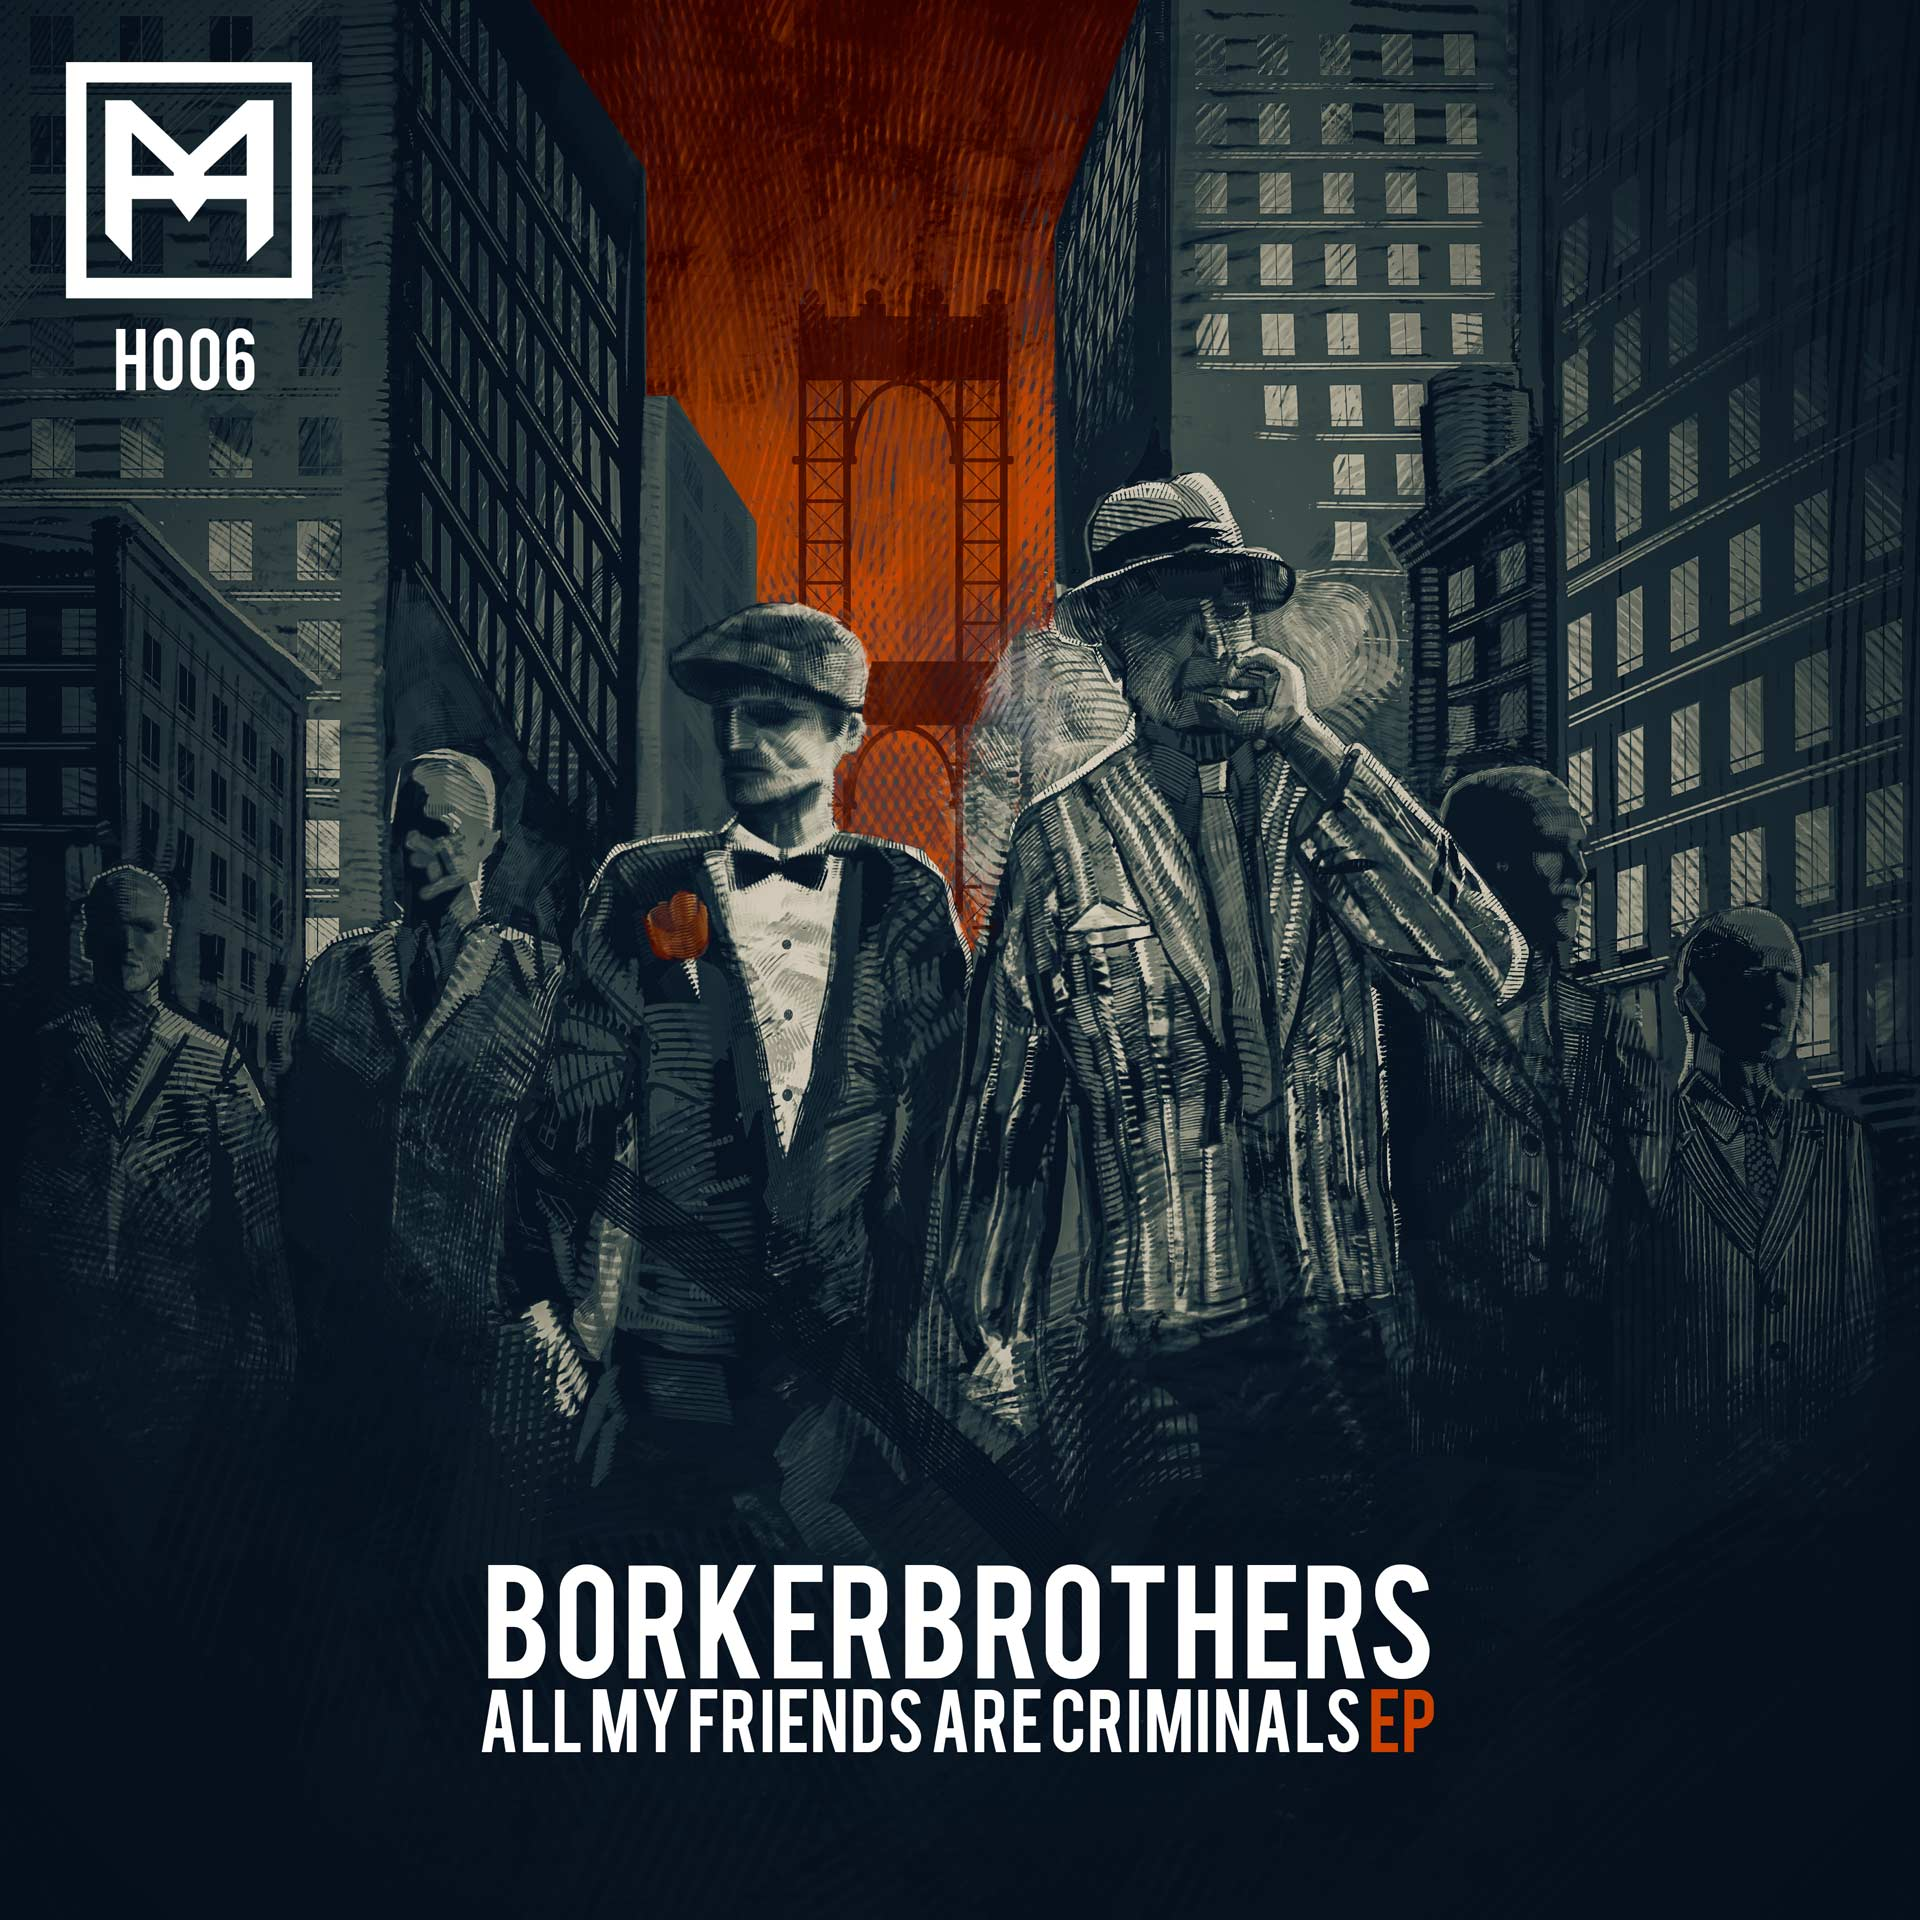 Umut präsentiert: BorkerBrothers – All My Friends Are Criminals EP [H006]